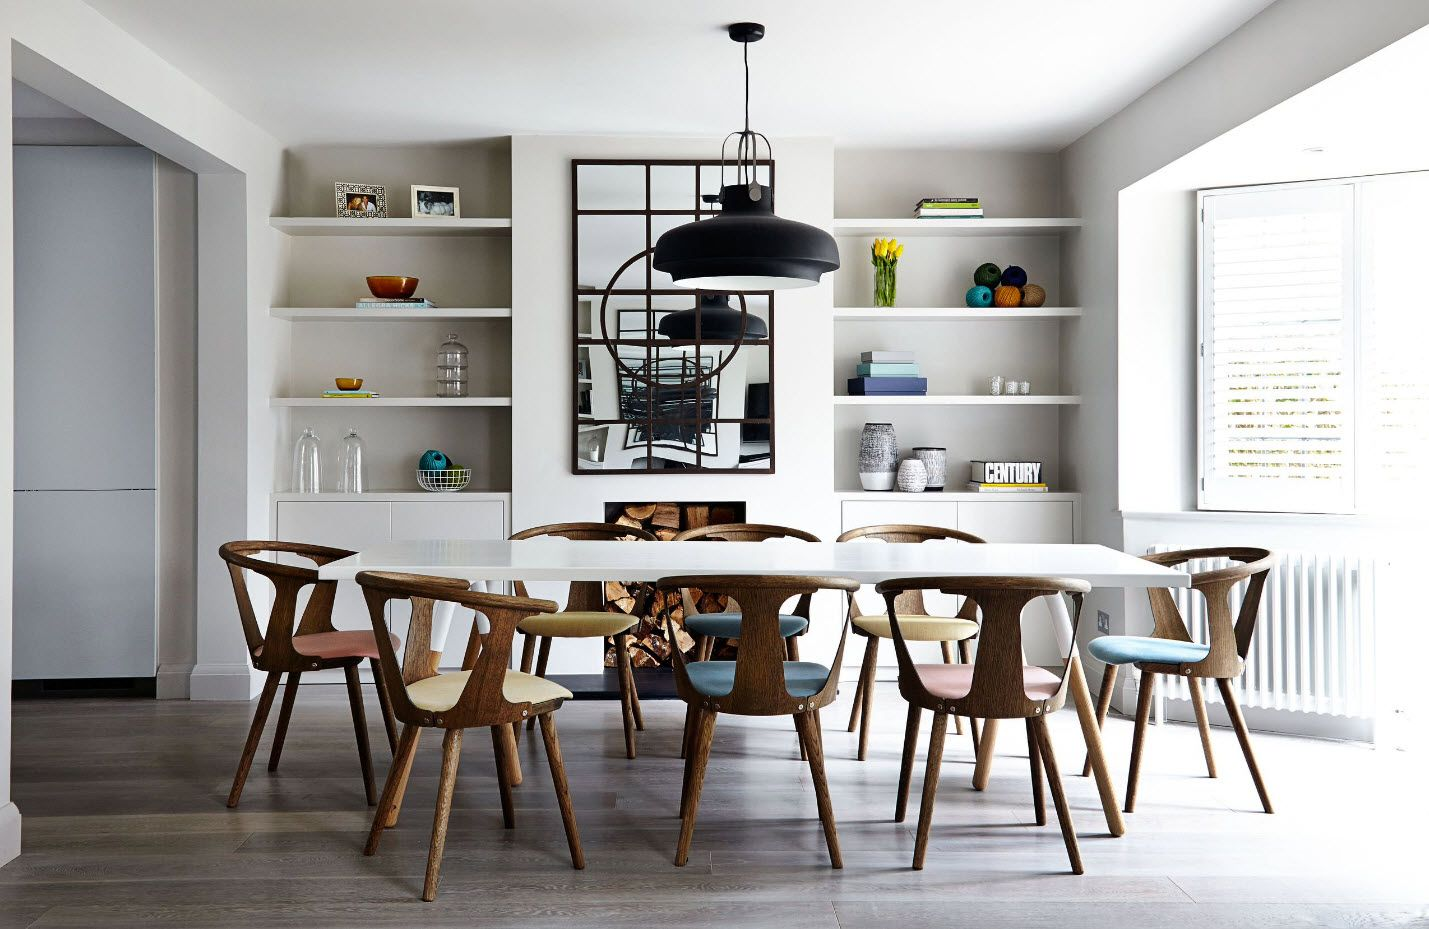 Dining Zone Table and Chairs: Practical and Aesthetic Composition. Wooden materials and Scandinavian style sets the mood